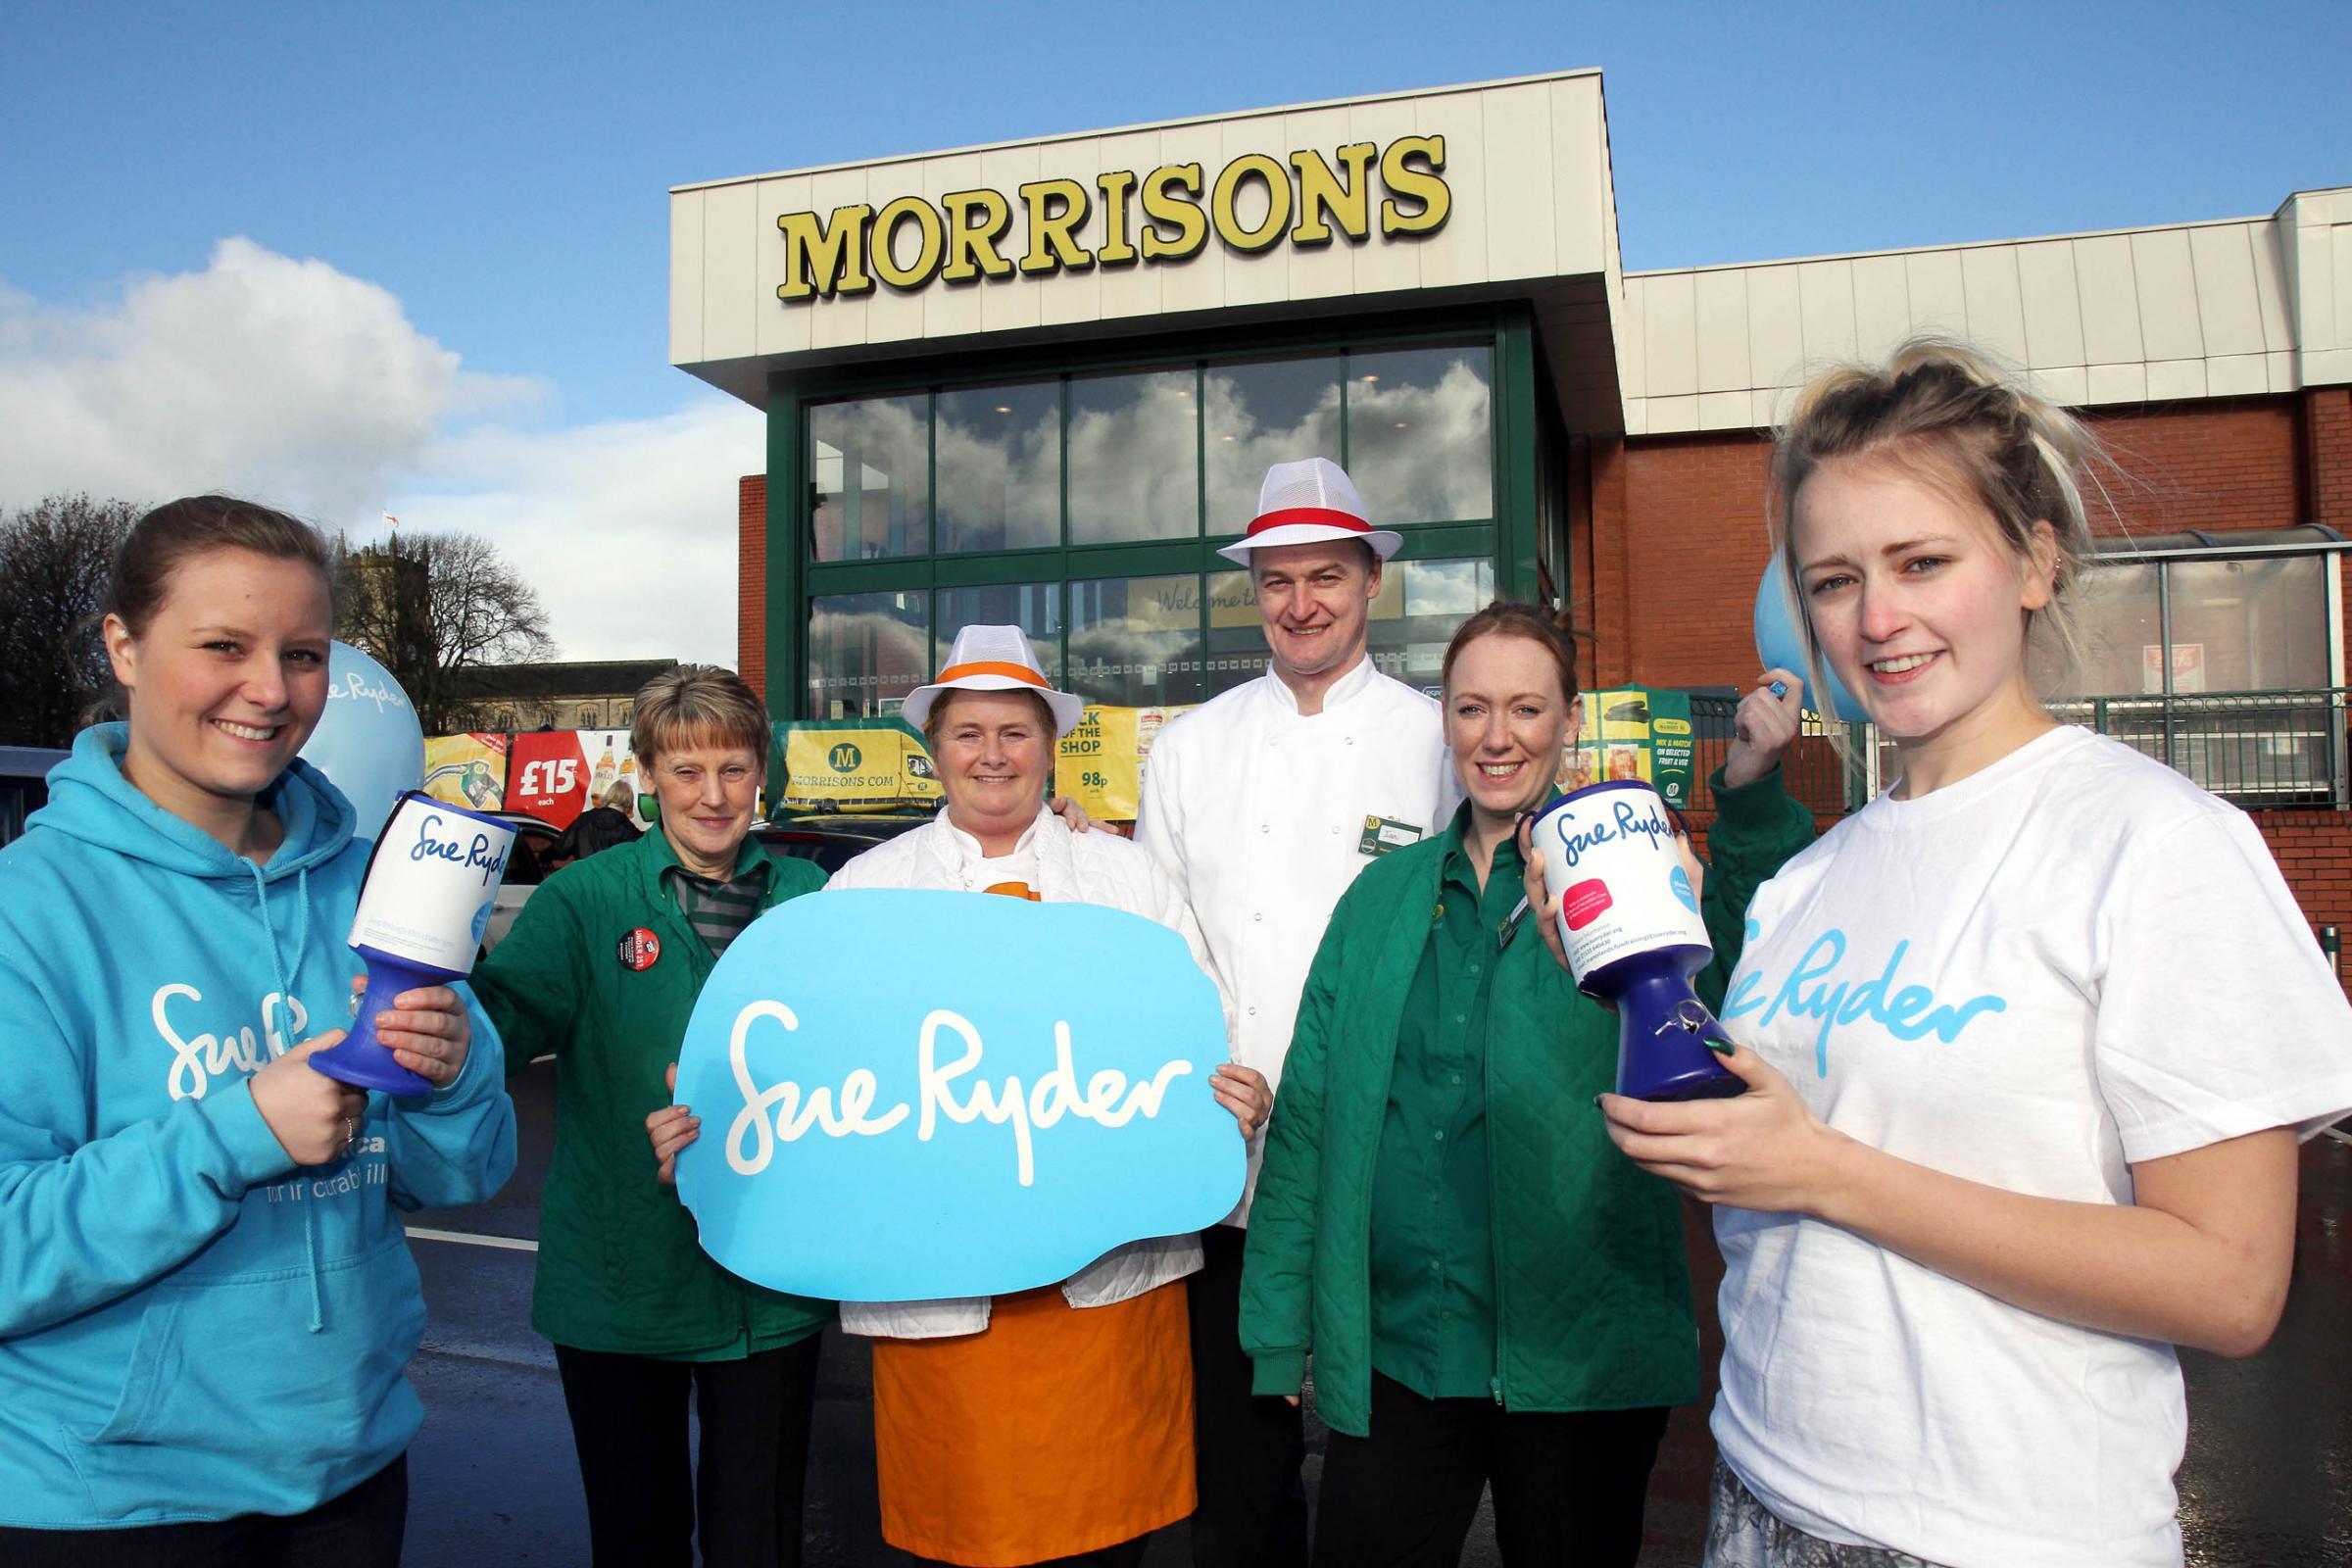 Manorlands fundraiser Hayley Ibbotson, left, and Poppy Holmes, right, who is on placement at the hospice, join Keighley Morrisons staff, from left, Jean Brown, Wendy Wiseman, Ian Burns and Tricia Cutts, to celebrate the partnership